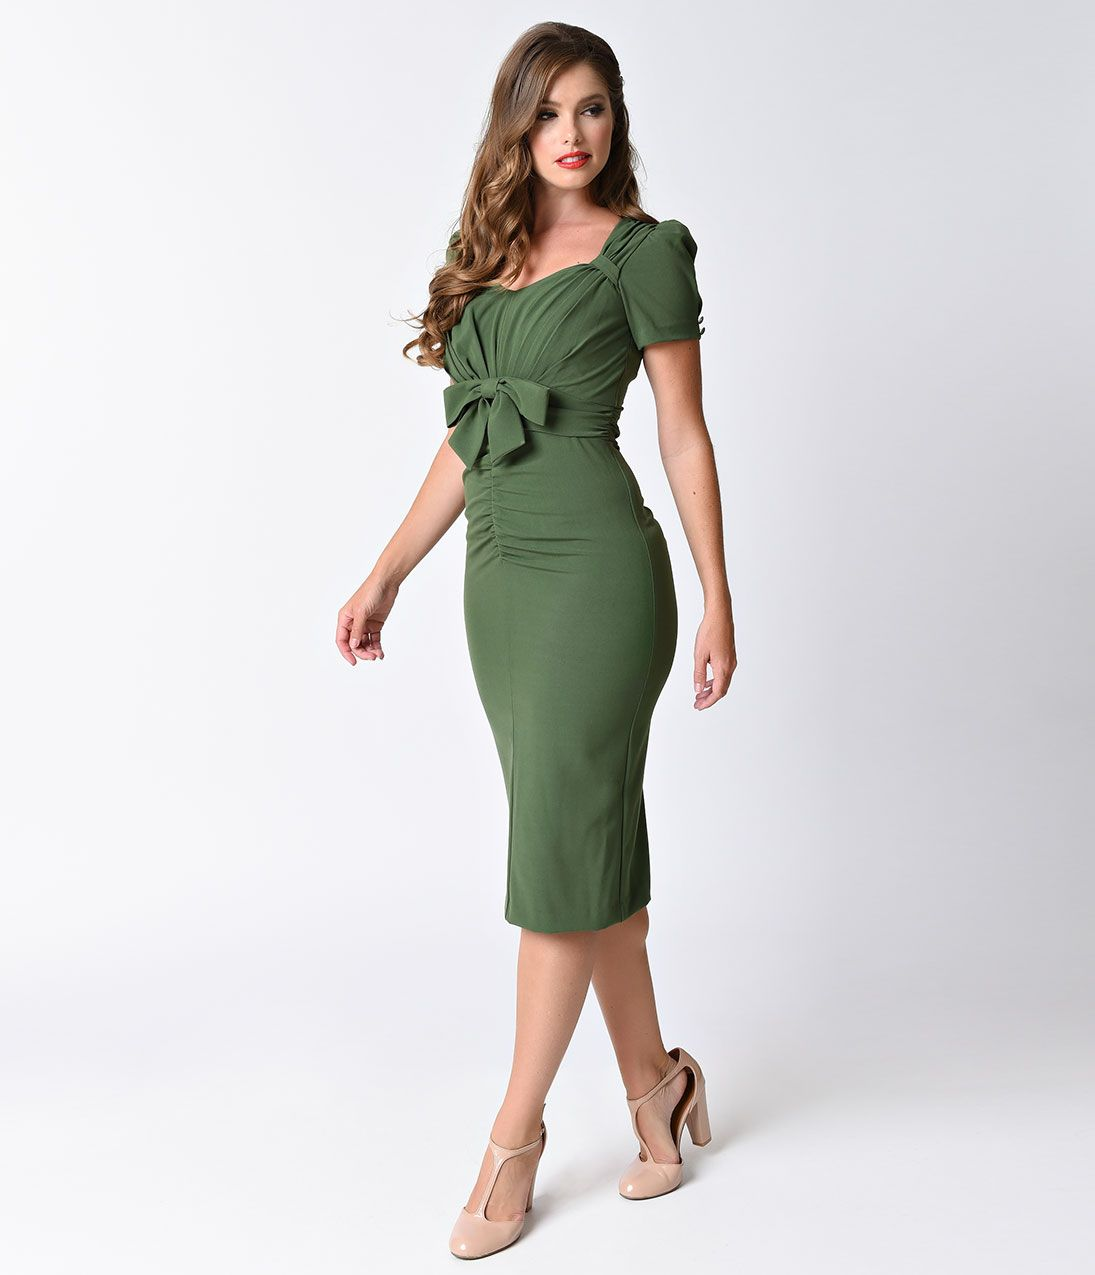 60s green dress  Vintage Style Dresses s s s and s  s Vintage